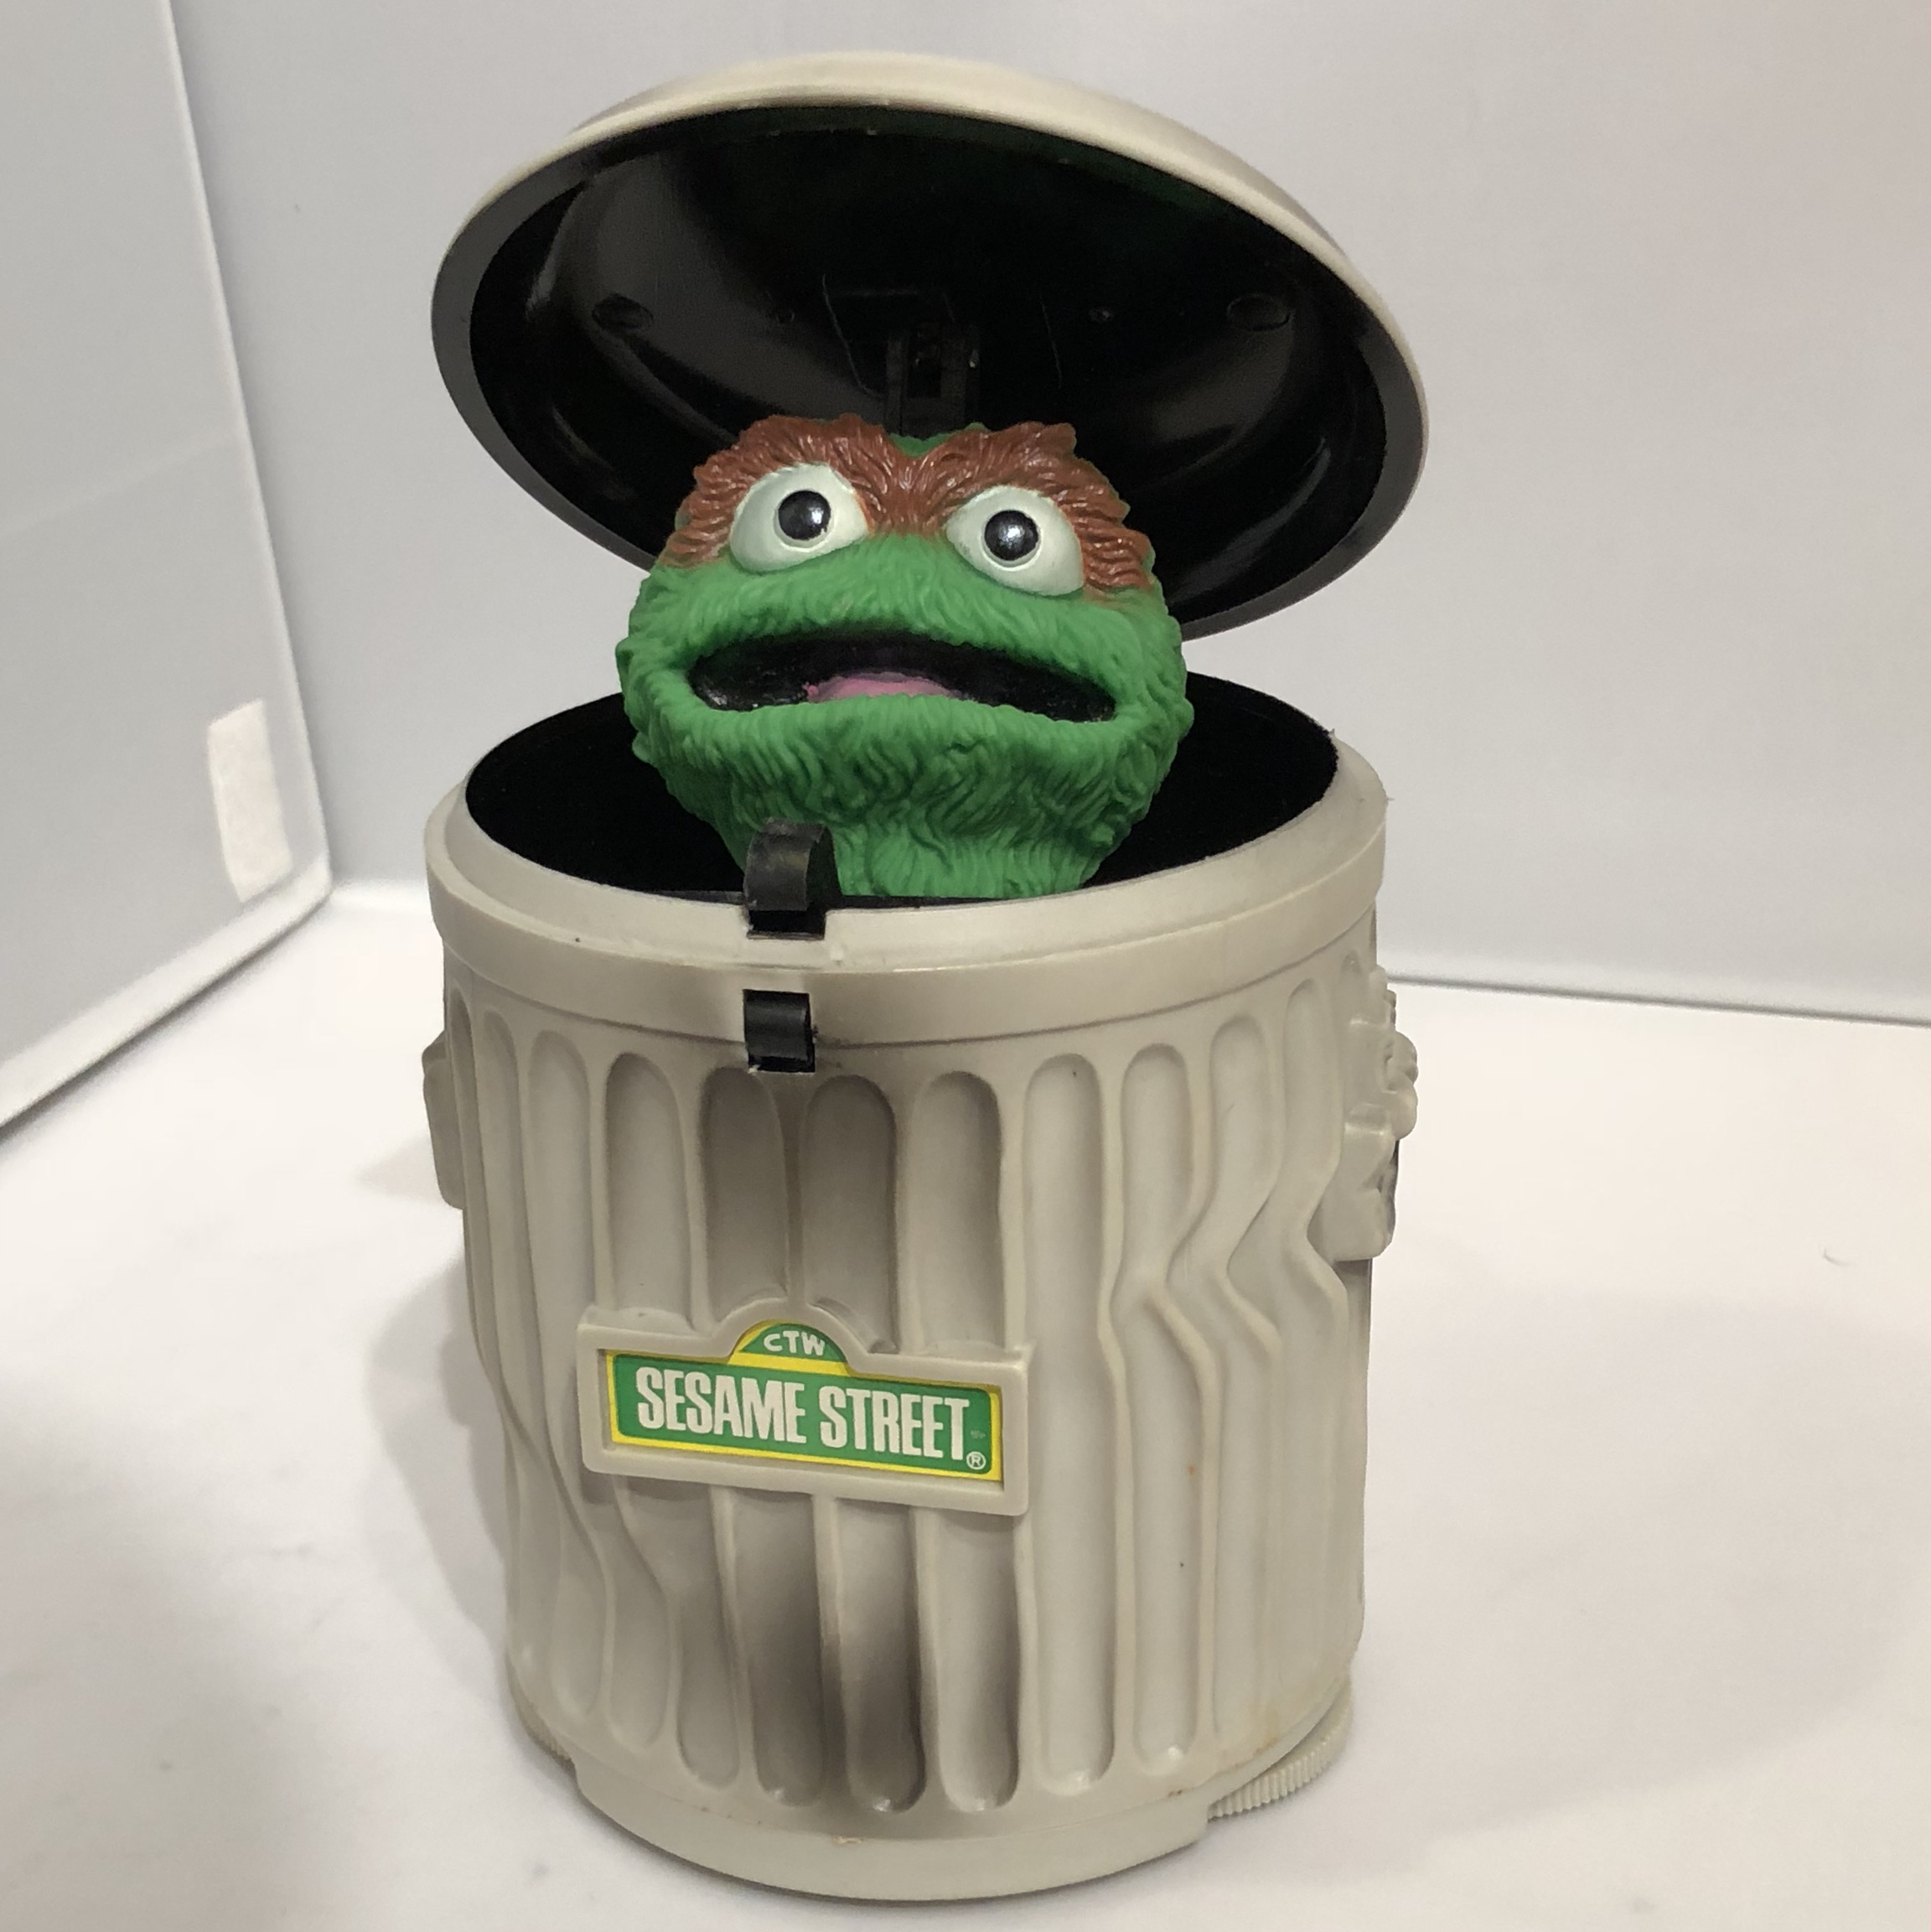 Oscar The Grouch Garbage Can Radio New With Box And